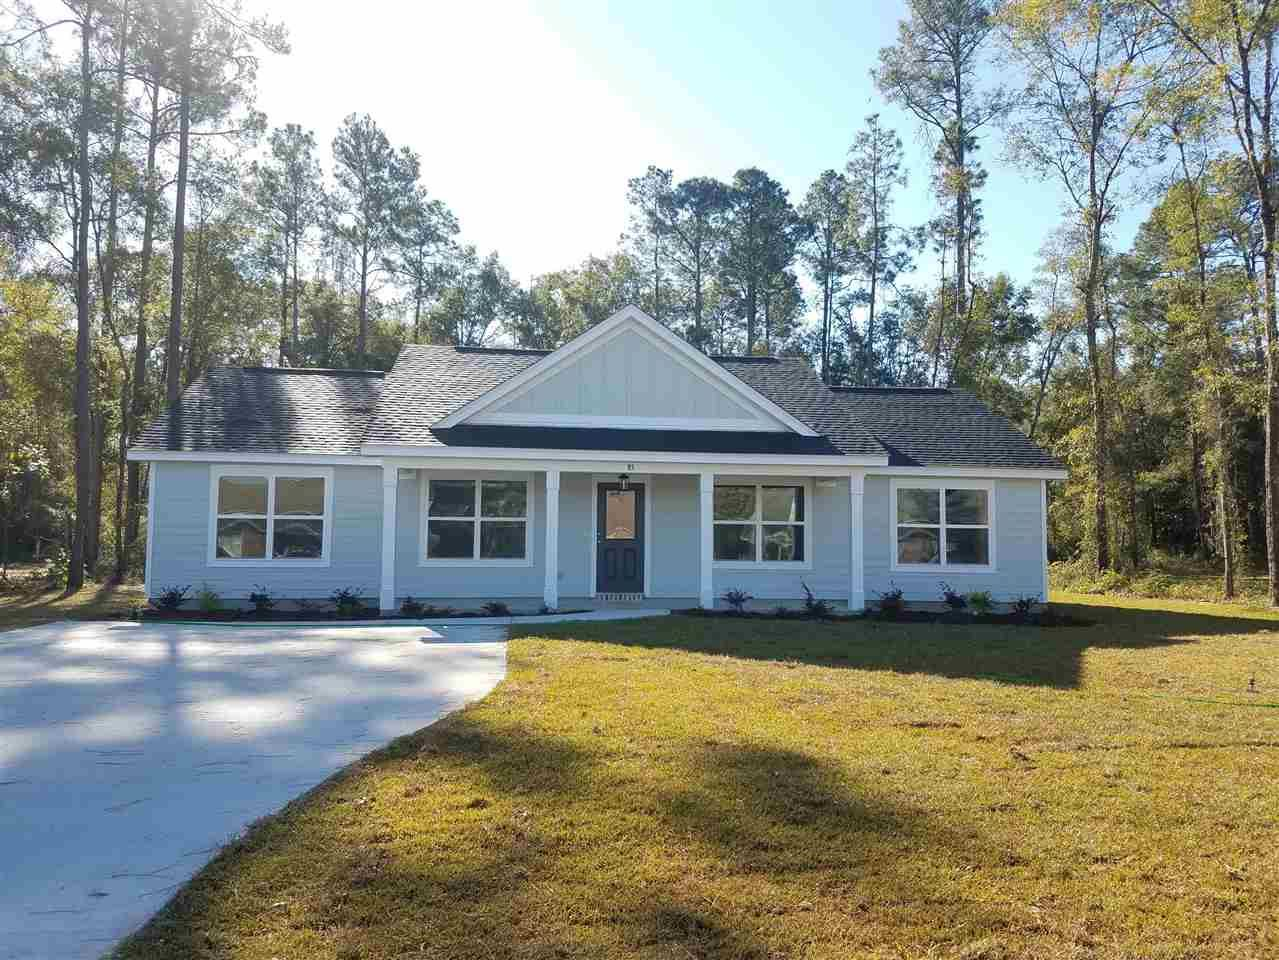 4 Lee Street, Crawfordville, FL 32327 - MLS#: 328207